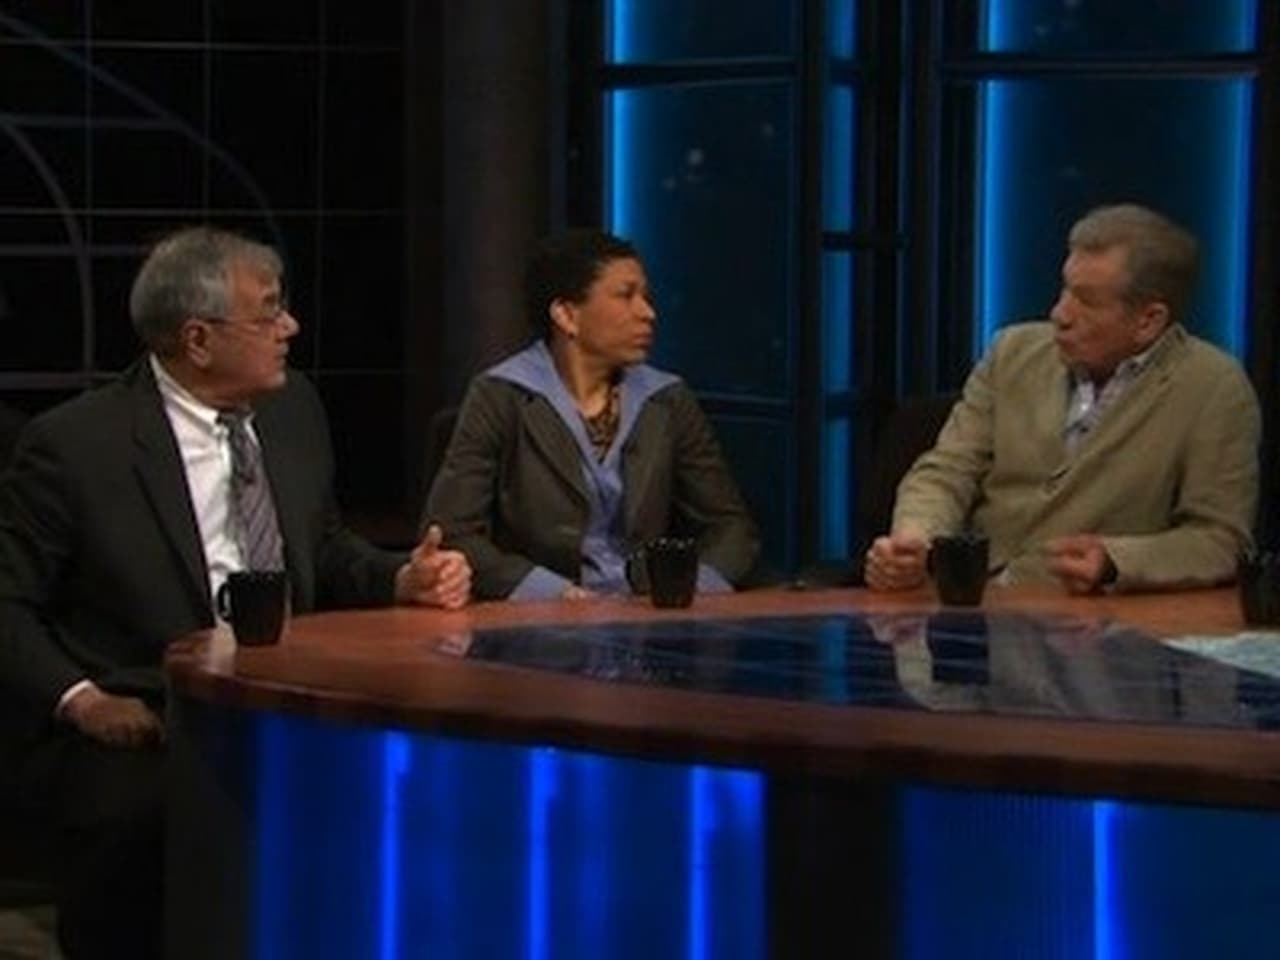 Real Time with Bill Maher - Season 4 Episode 10 : April 28, 2006